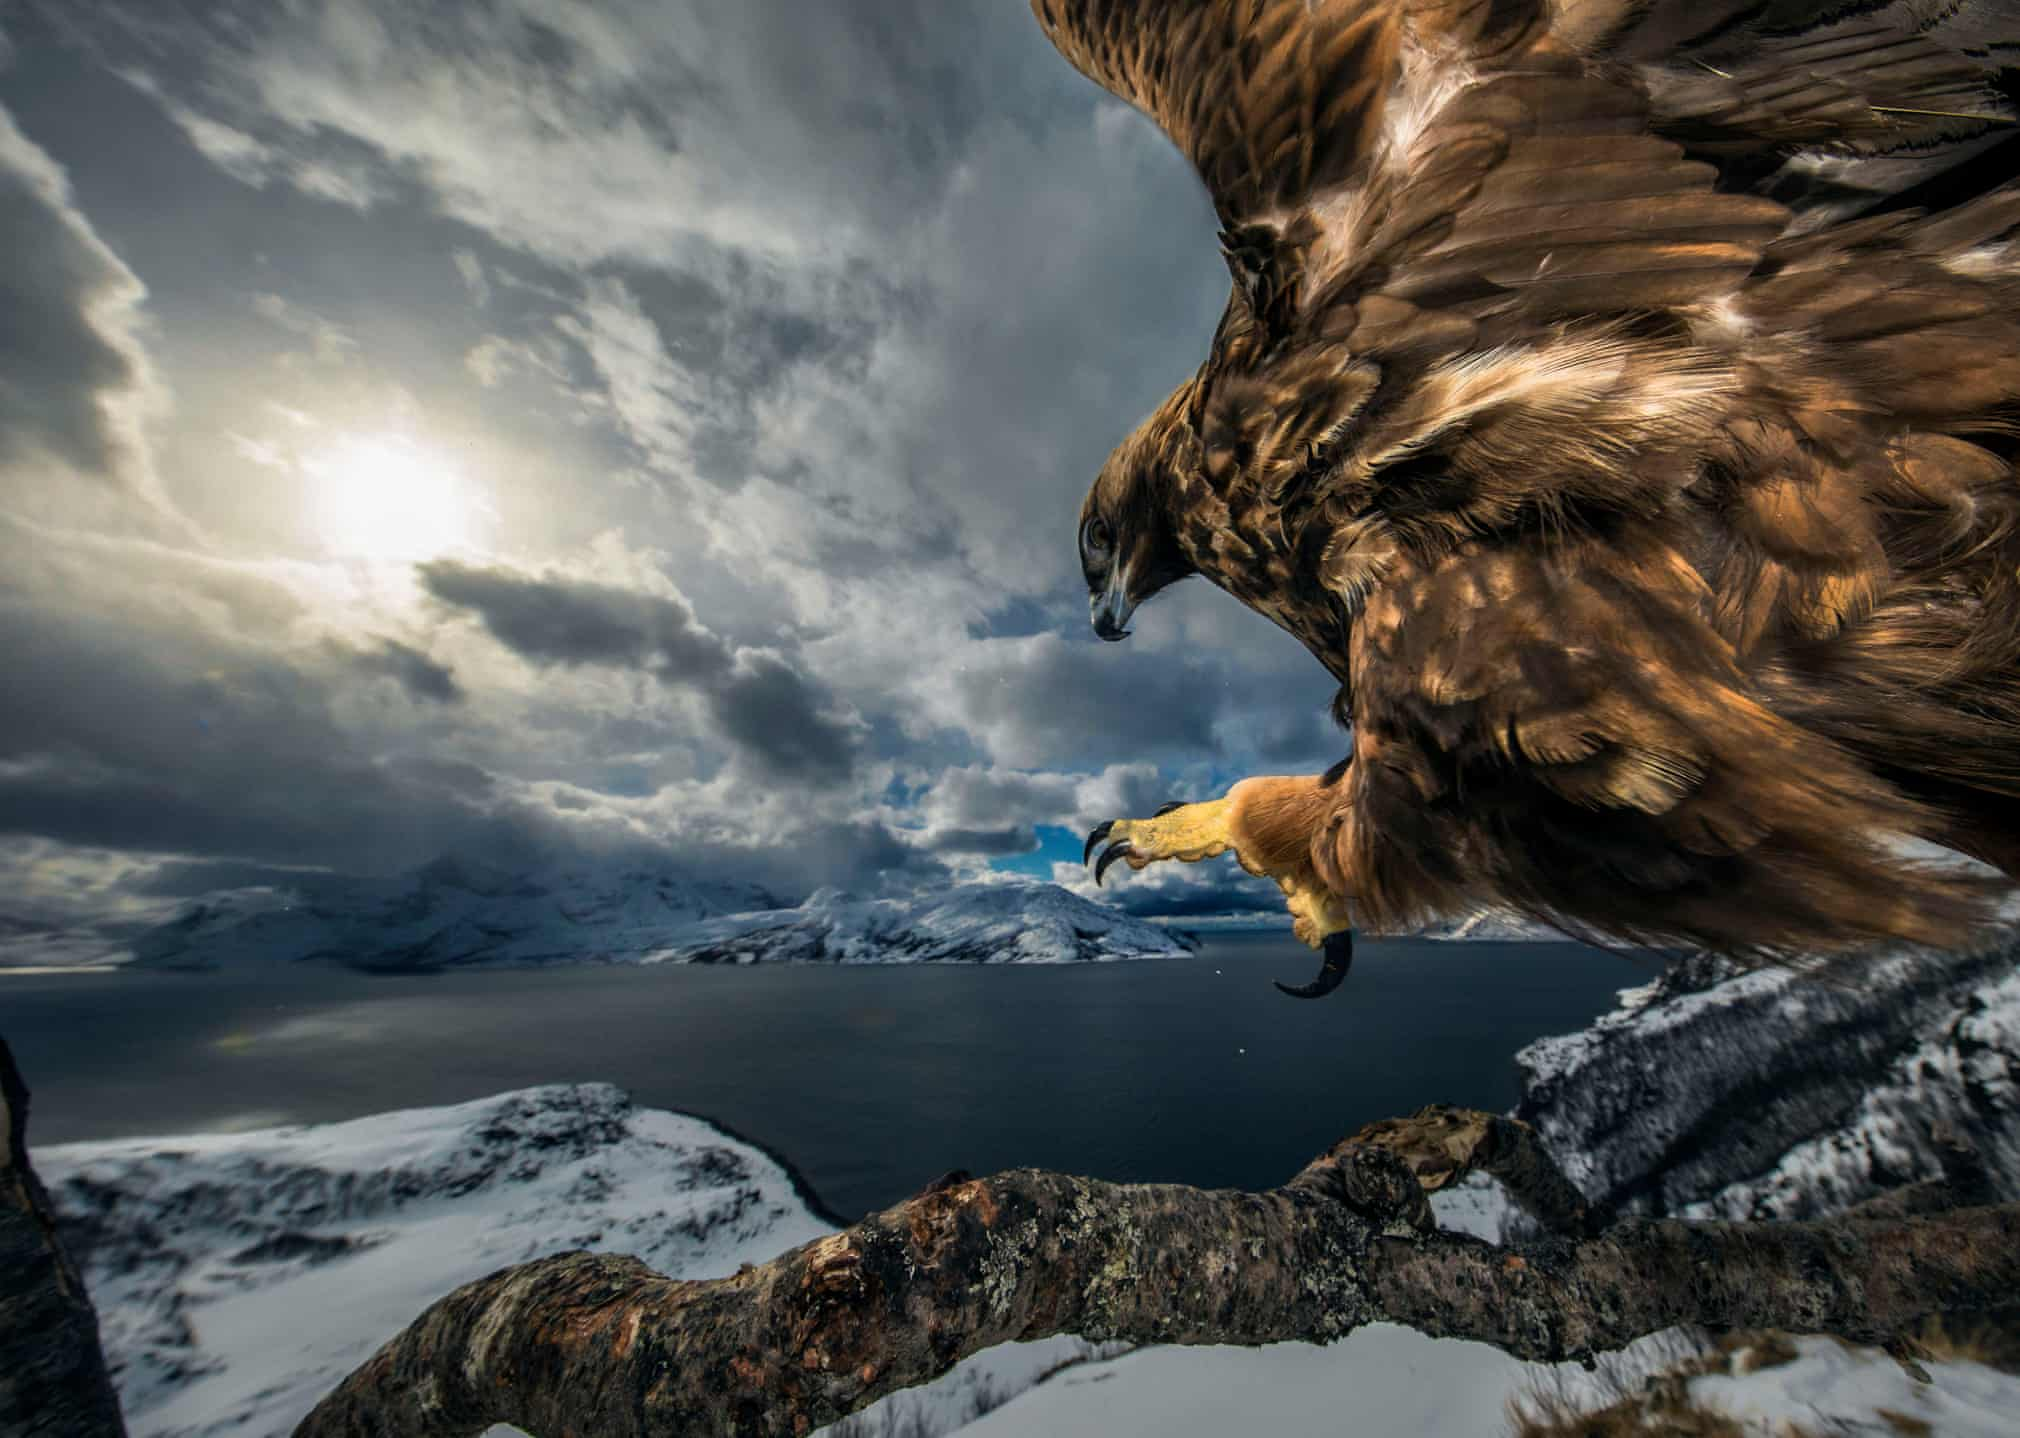 Wildlife photographer of the year 2019 winners